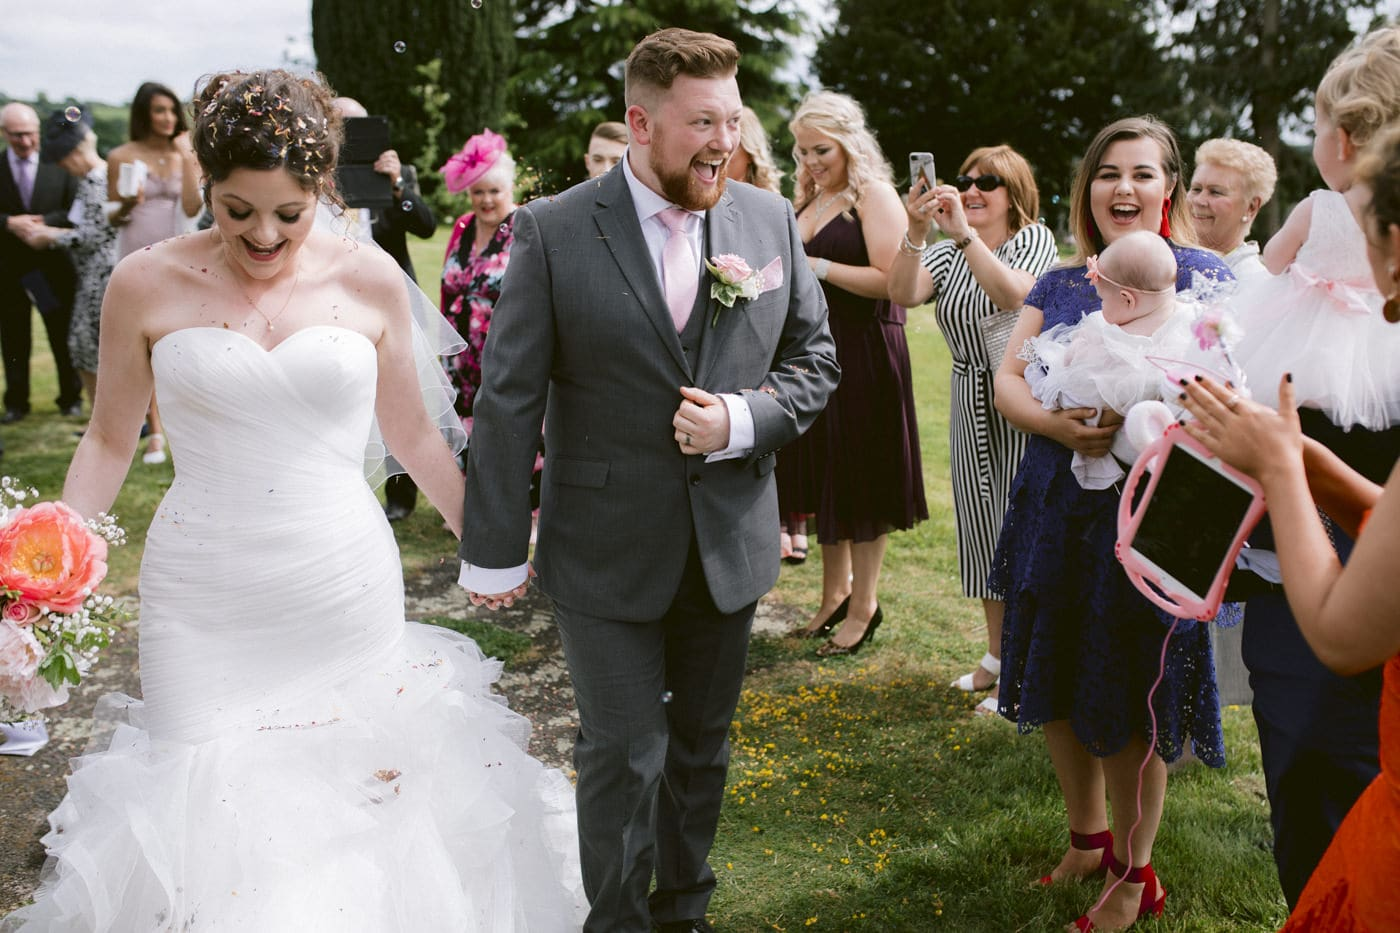 Guests and Bride and Groom Laughing, Celebrating outside while Walking Portrait Photography